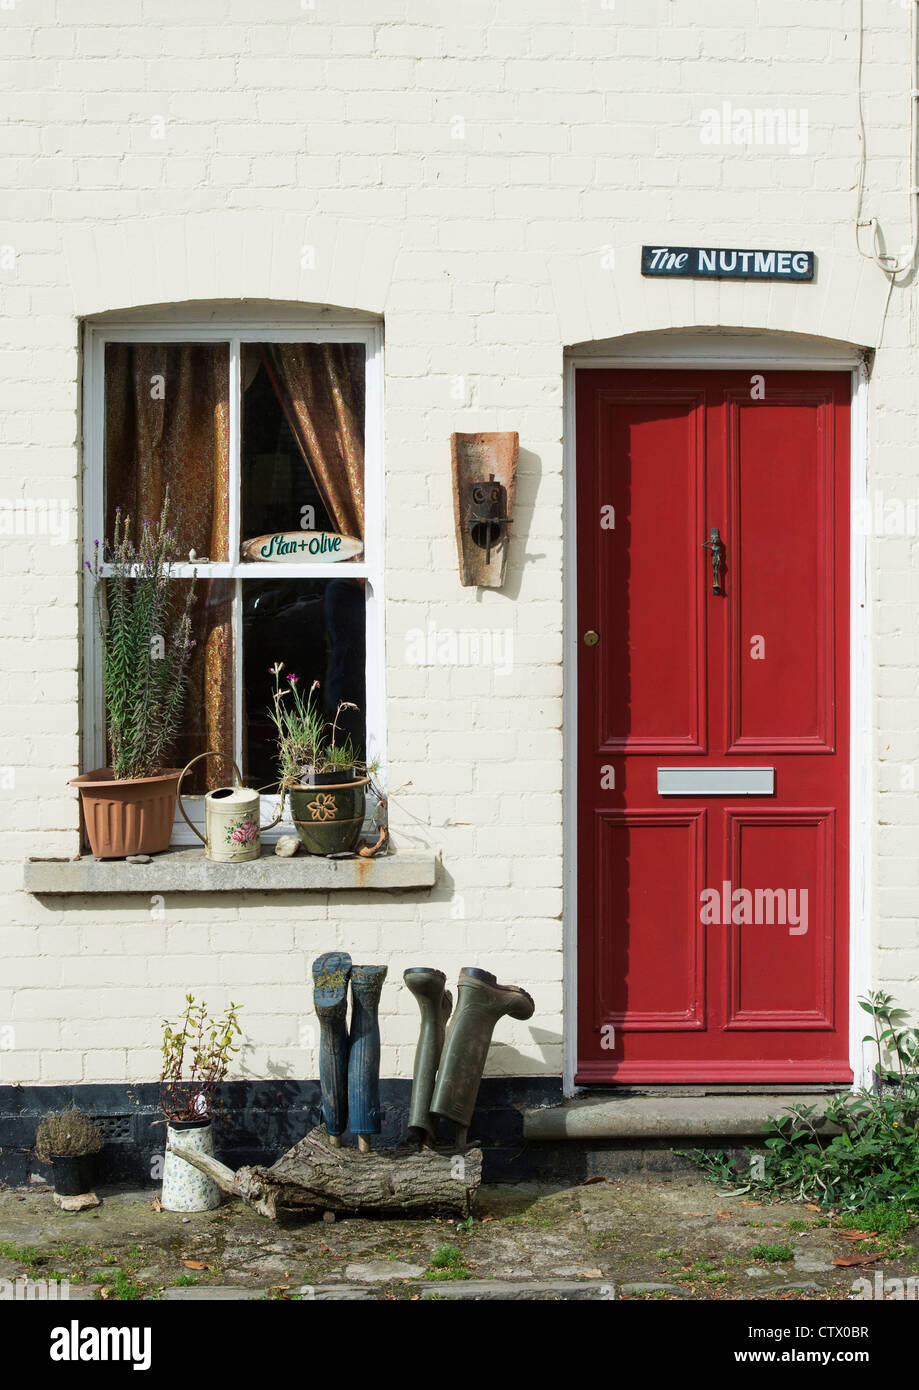 Quirky english colourful red door and house name. The Nutmeg. Eardisland. Herefordshire, England - Stock Image